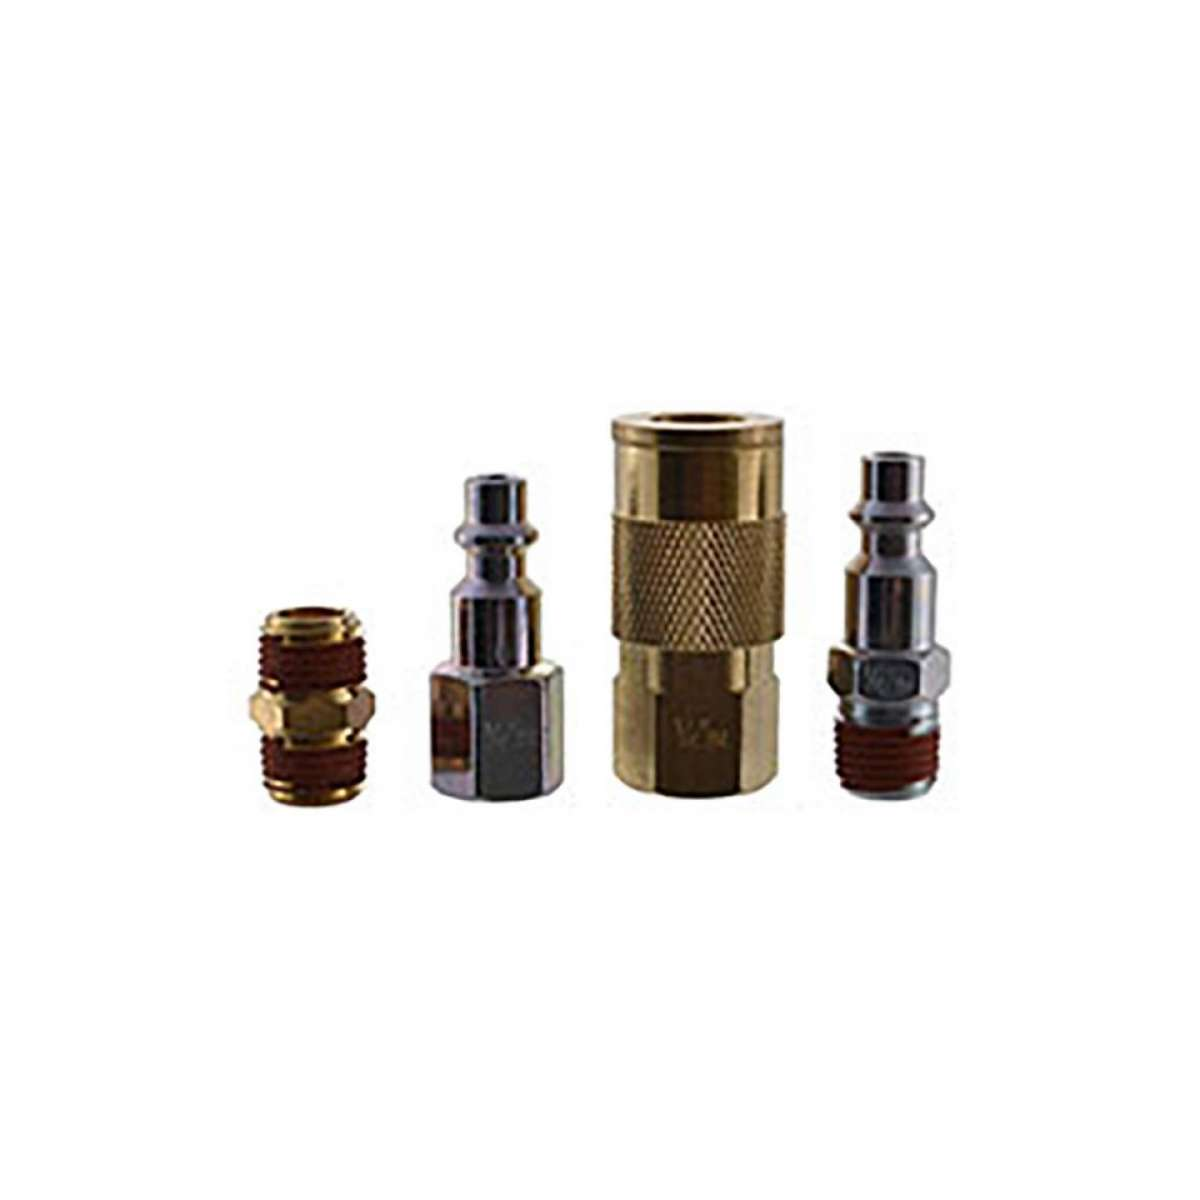 IsoLink Quick Connect Upgrade Kit